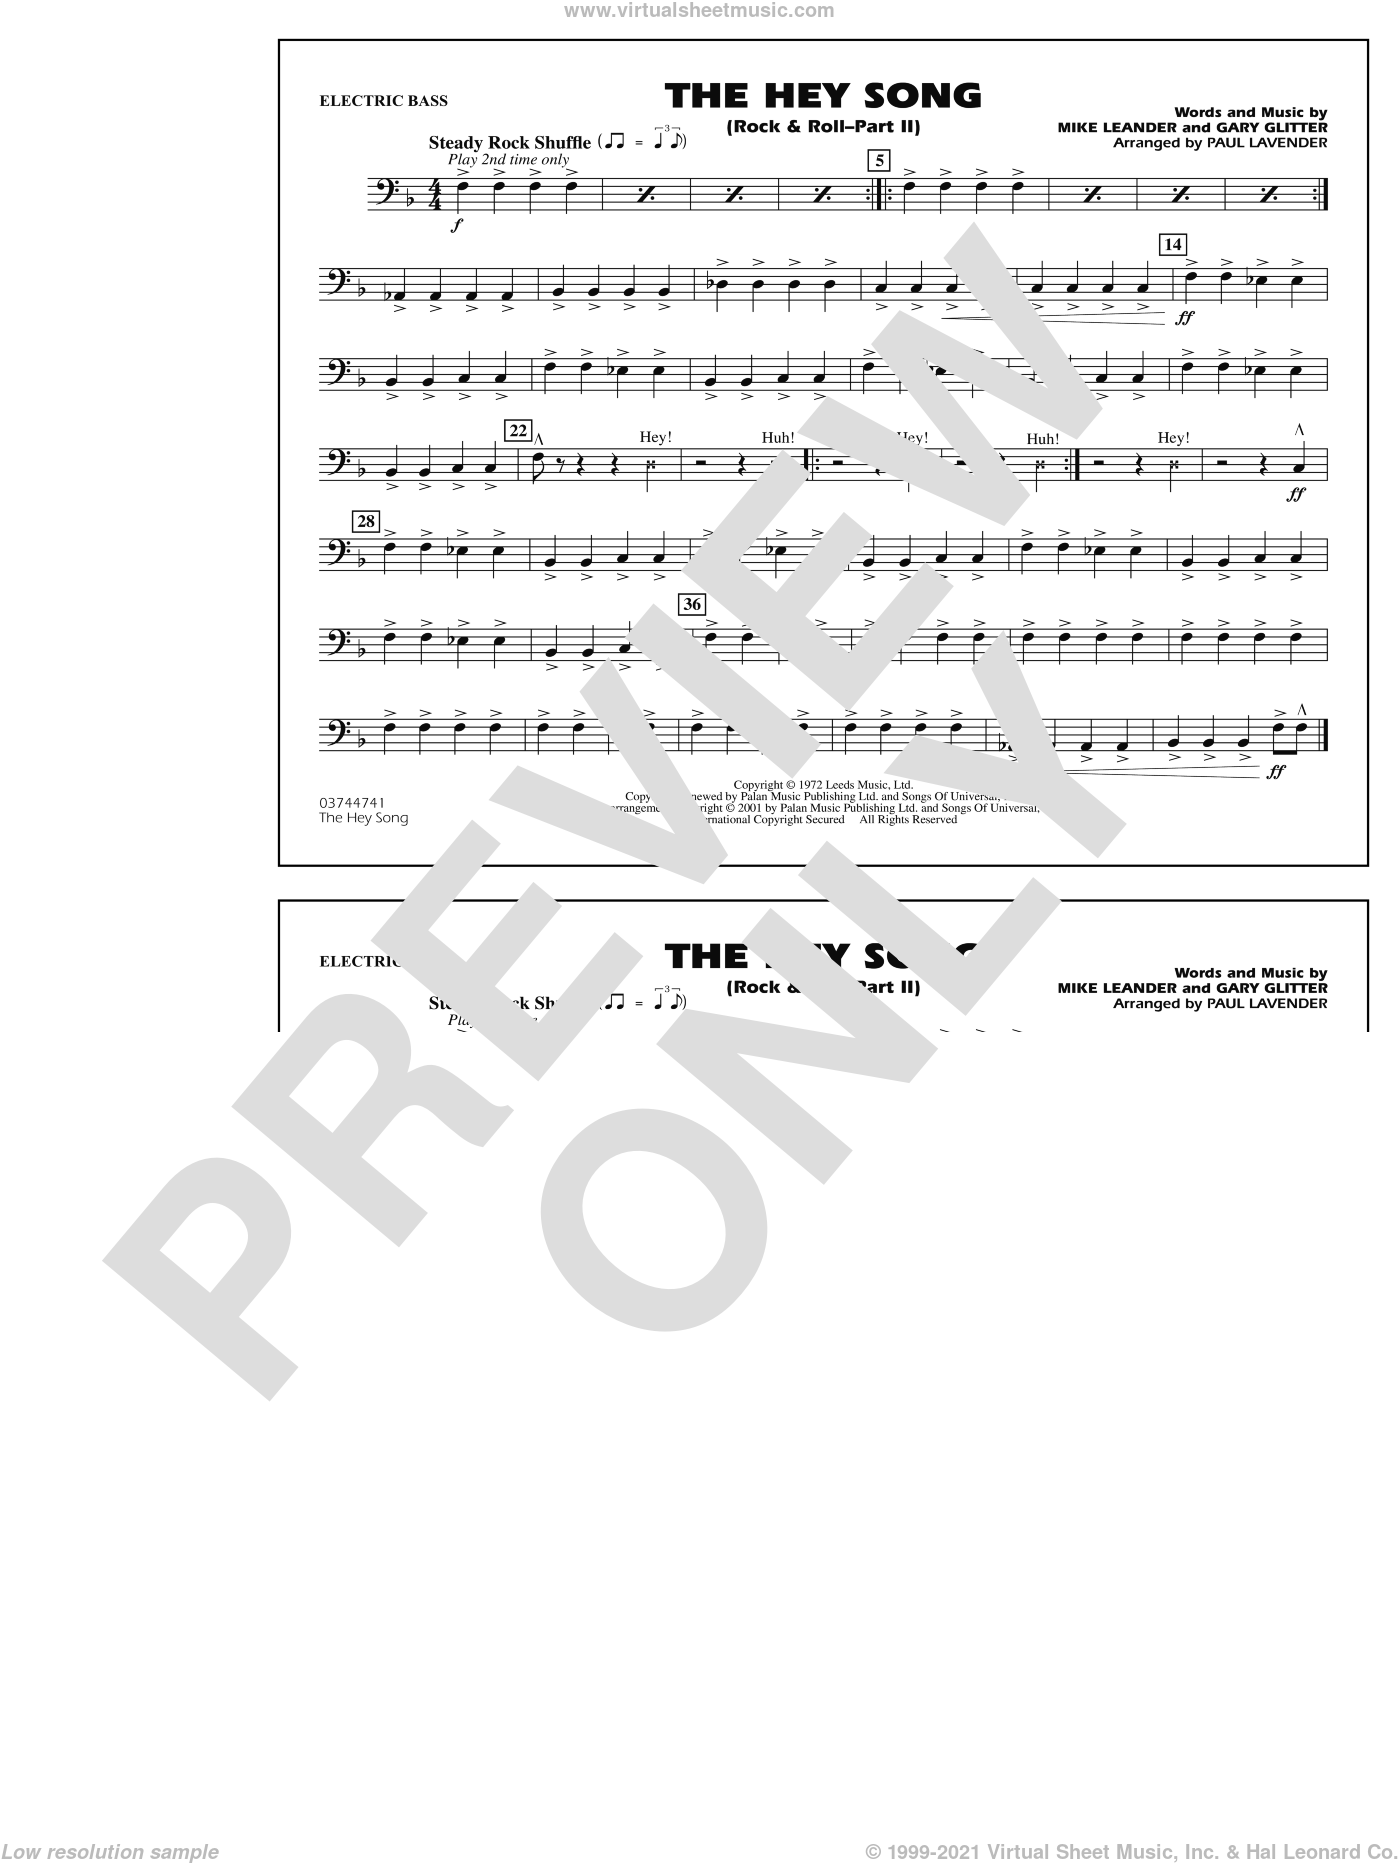 Rock and Roll, part ii (the hey song) sheet music for marching band (electric bass) by Mike Leander